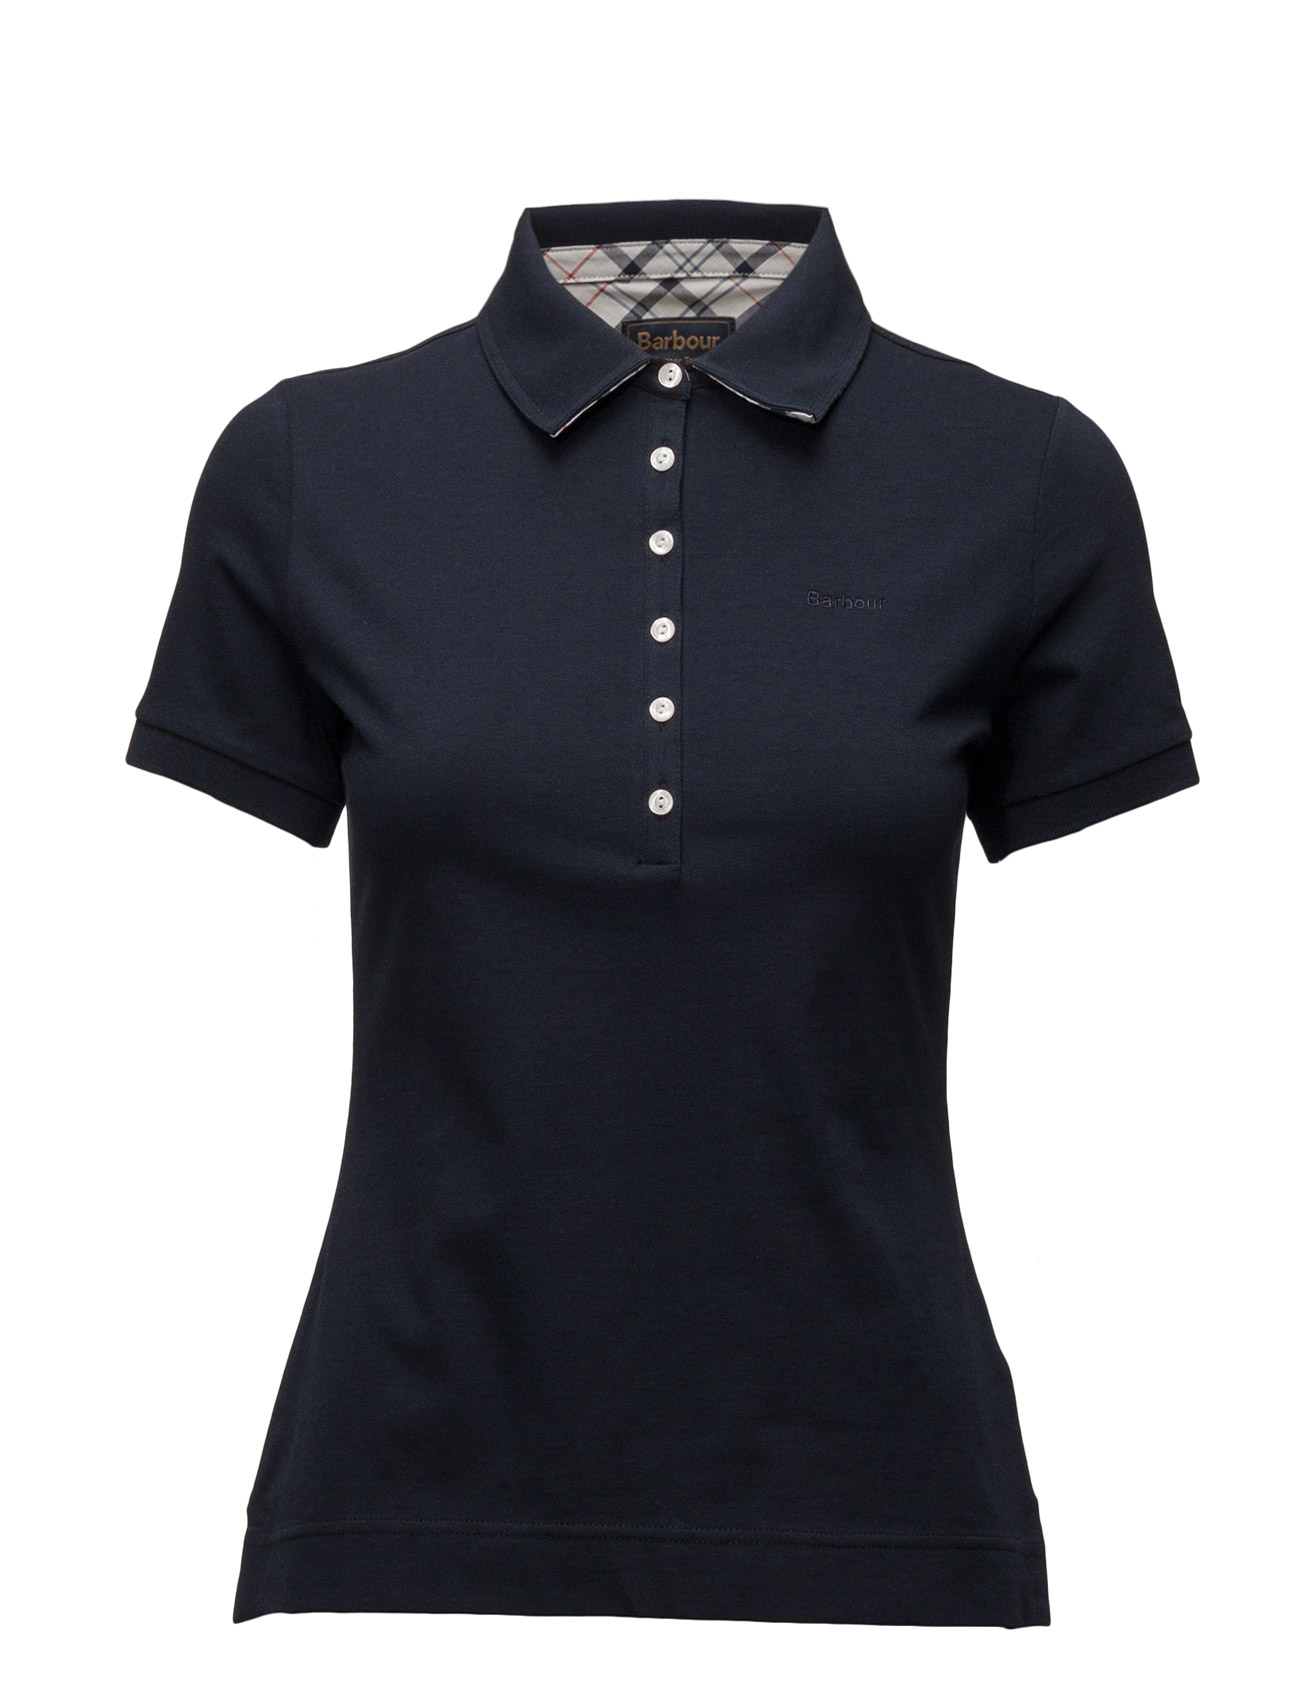 Golding Barbour Polo t-shirts til Damer i Navy blå